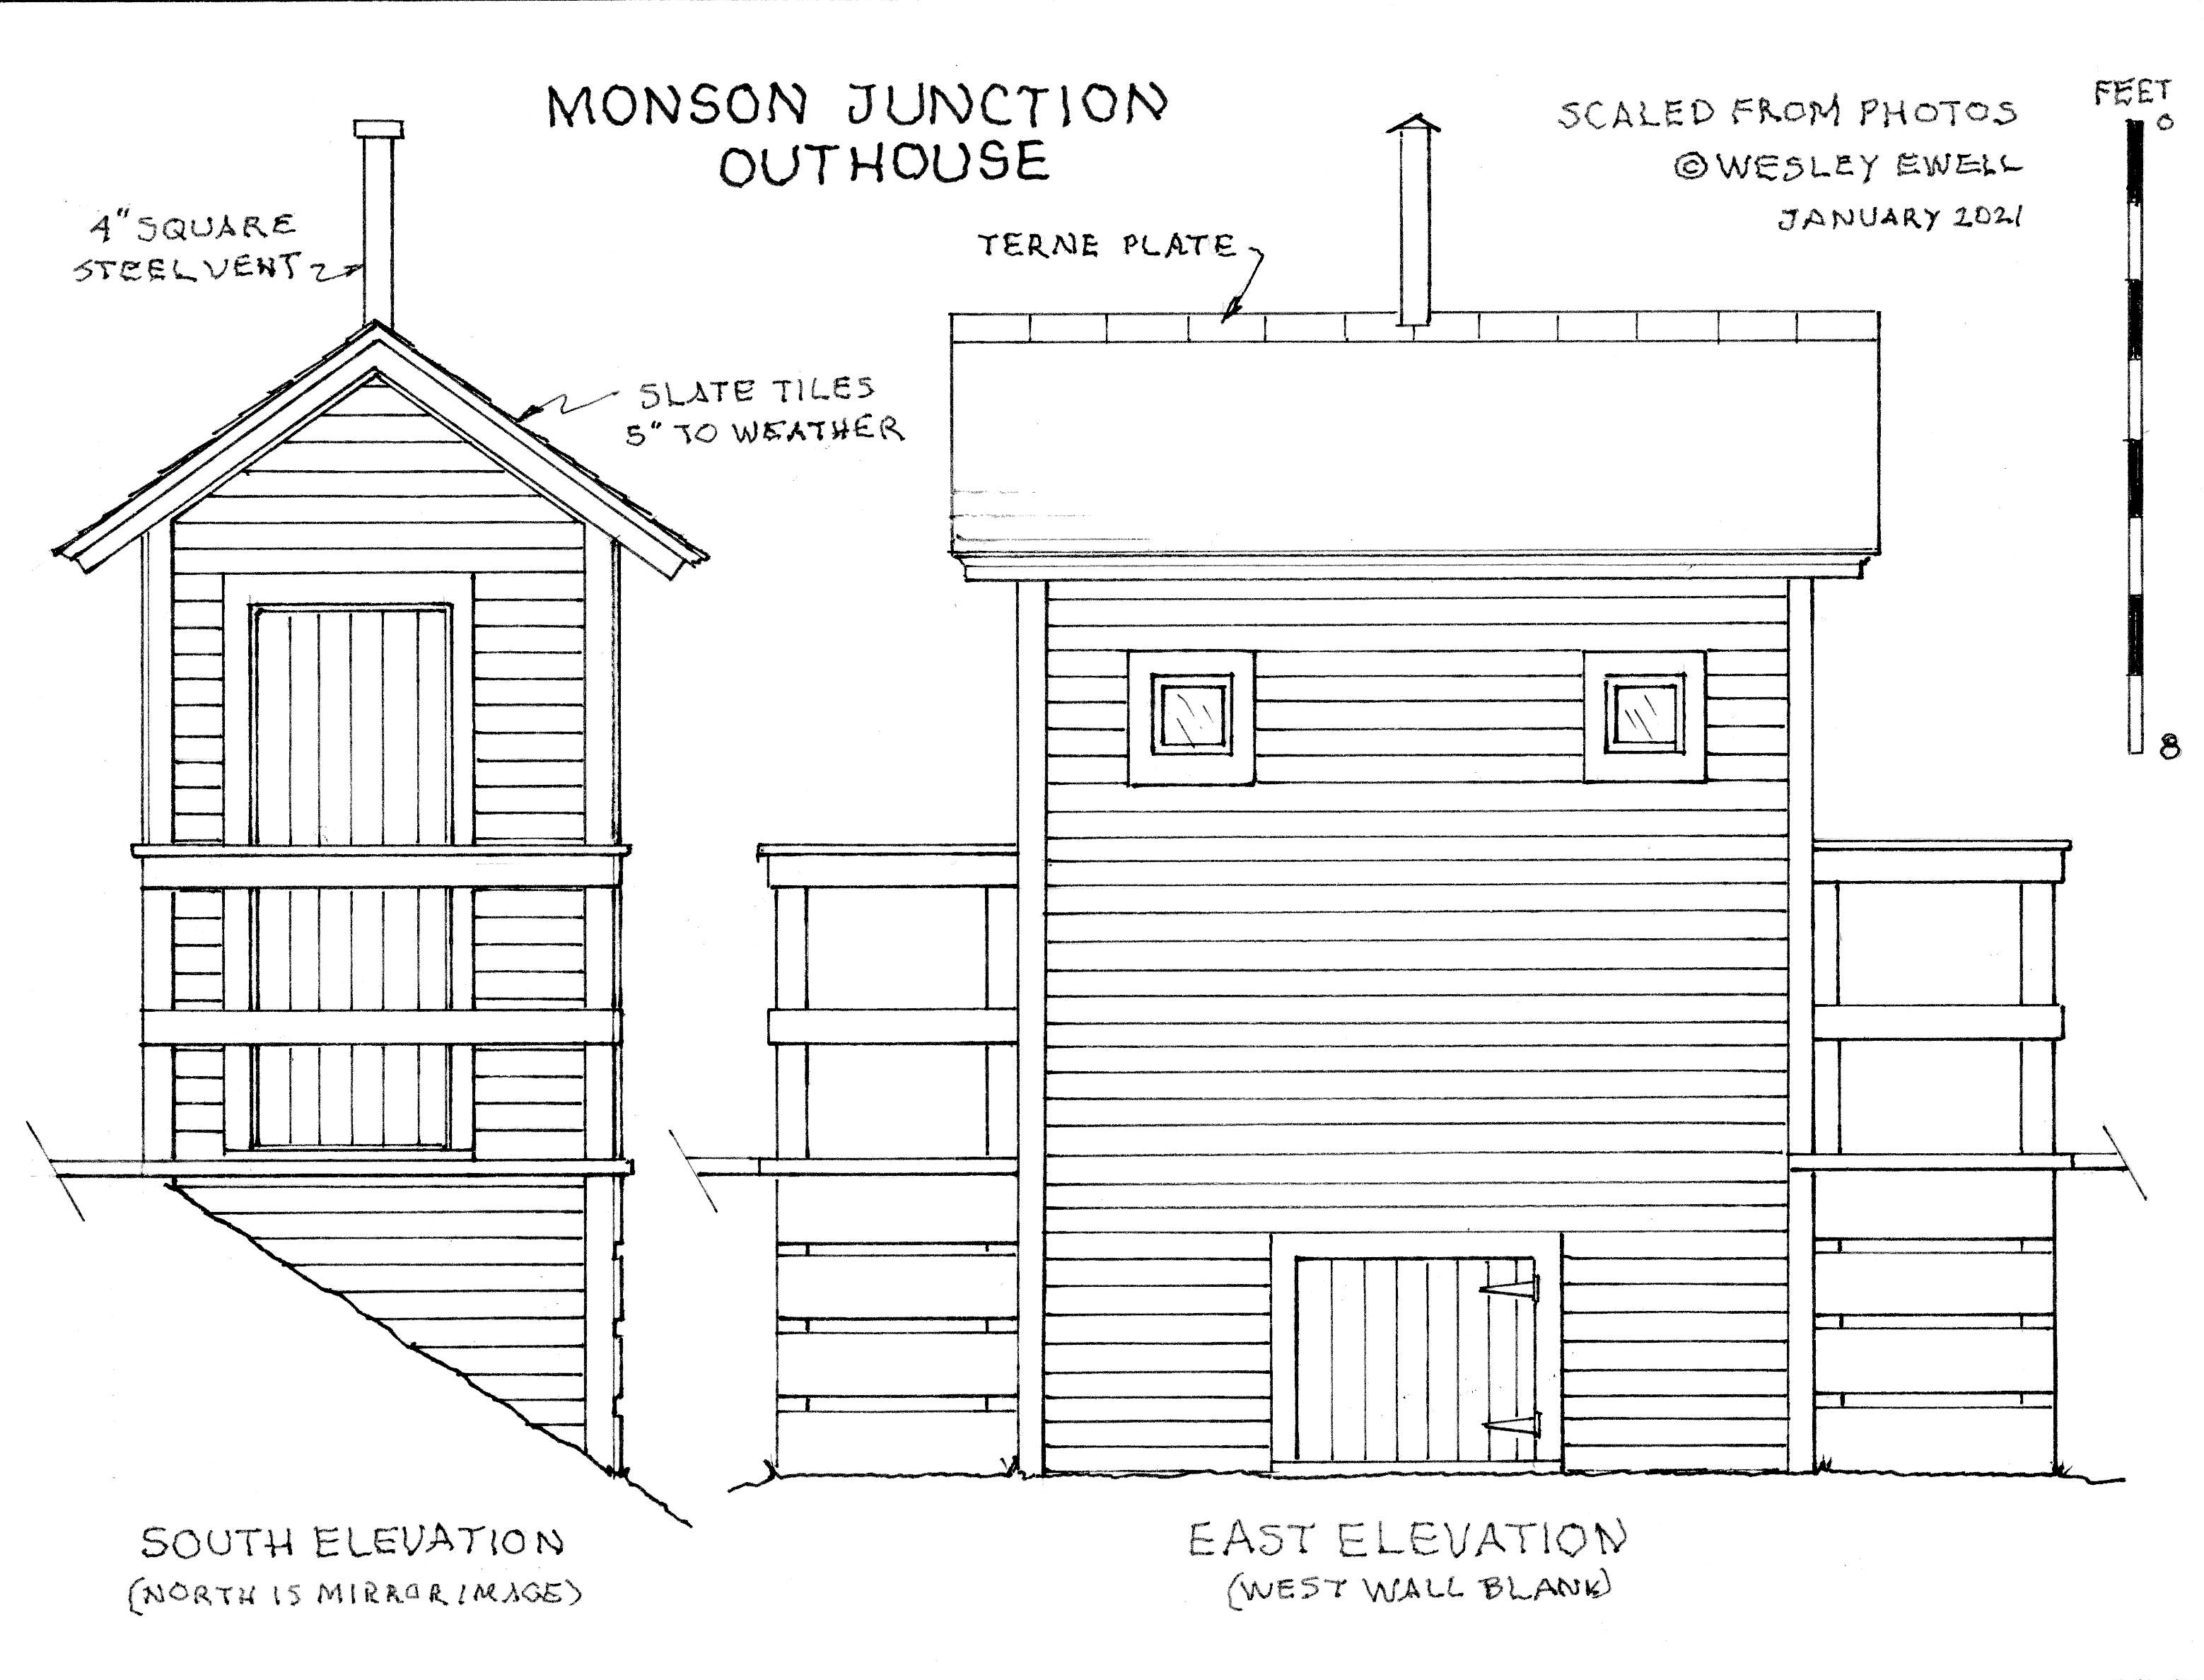 Monson Junction Outhouse